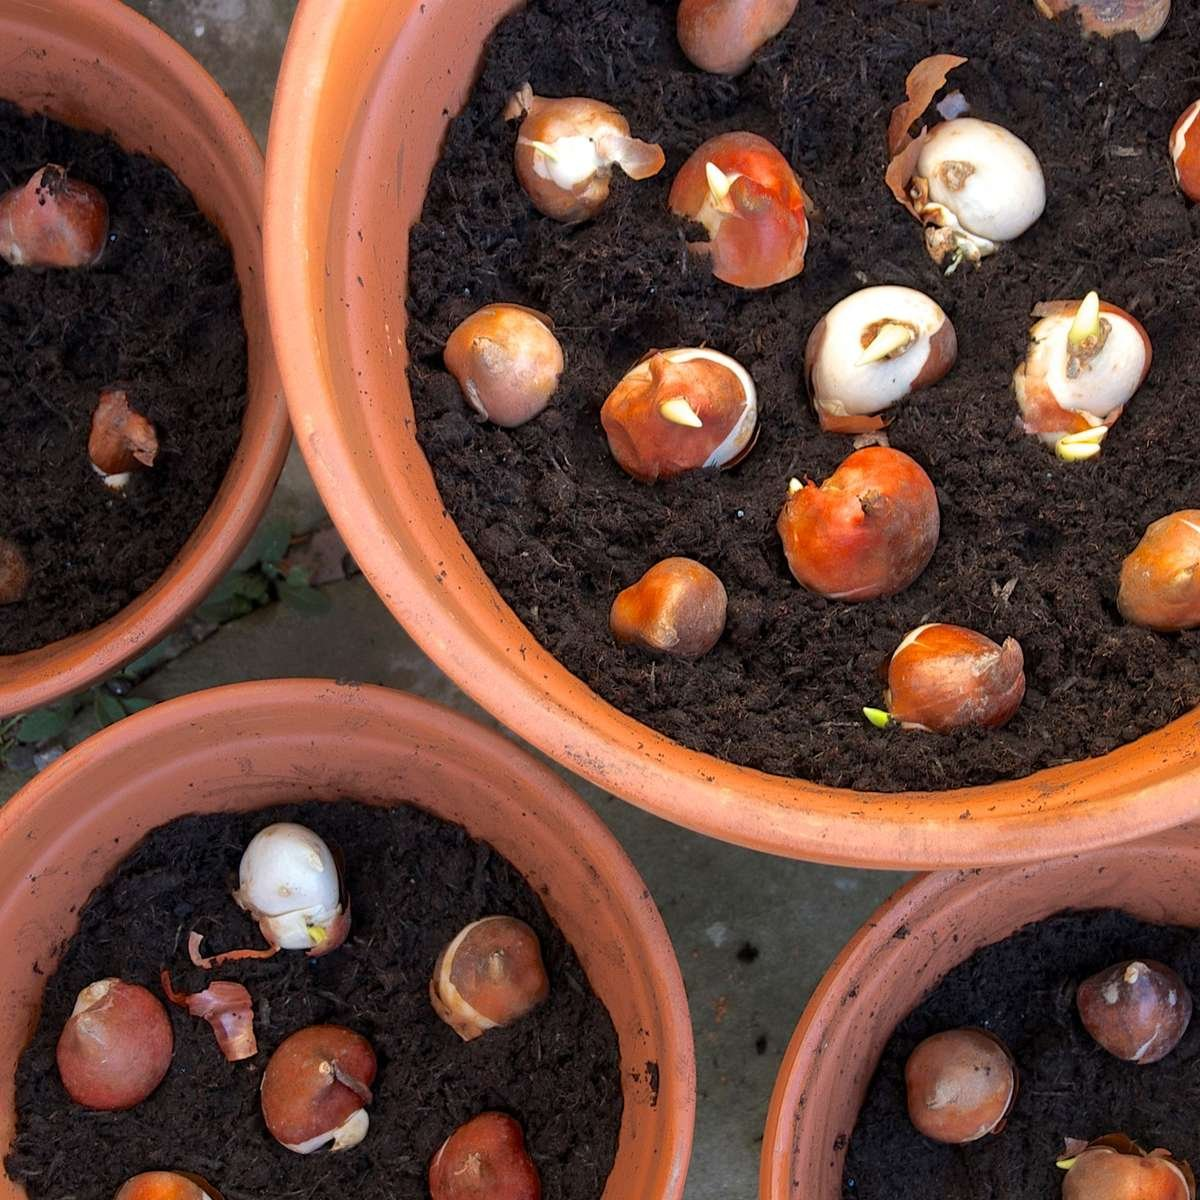 Bulbs planted in pots